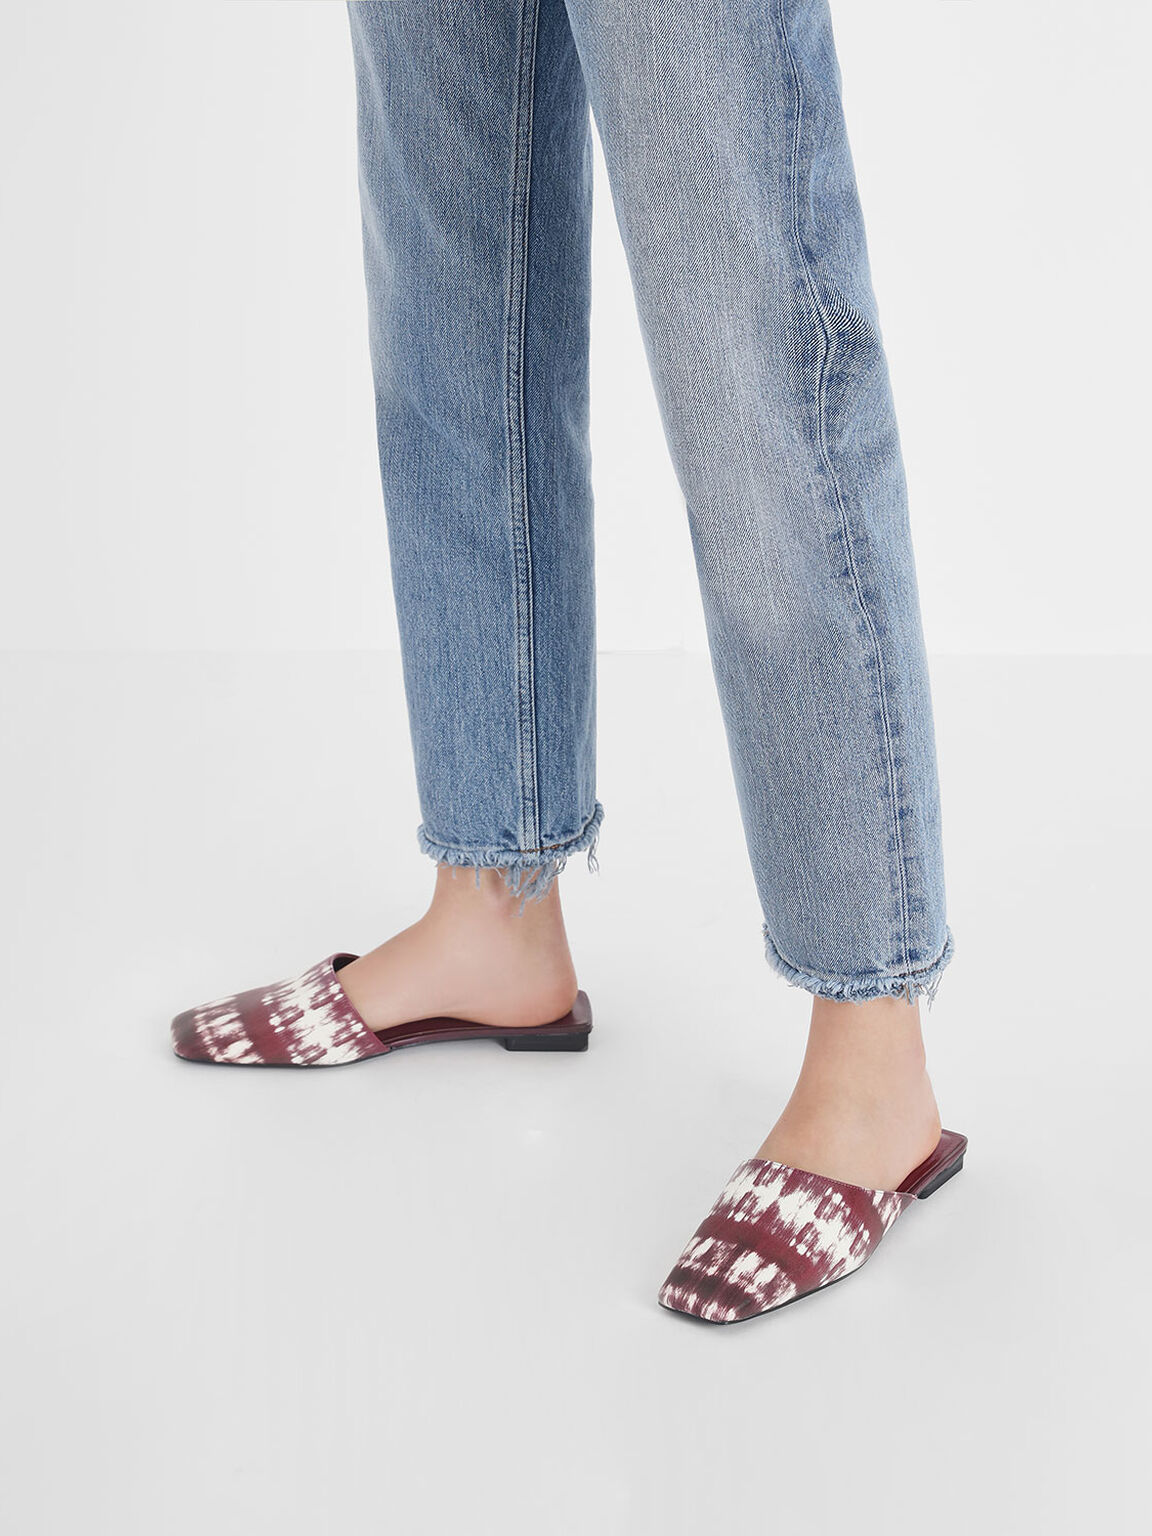 Printed Square Toe Asymmetrical Mules, Burgundy, hi-res